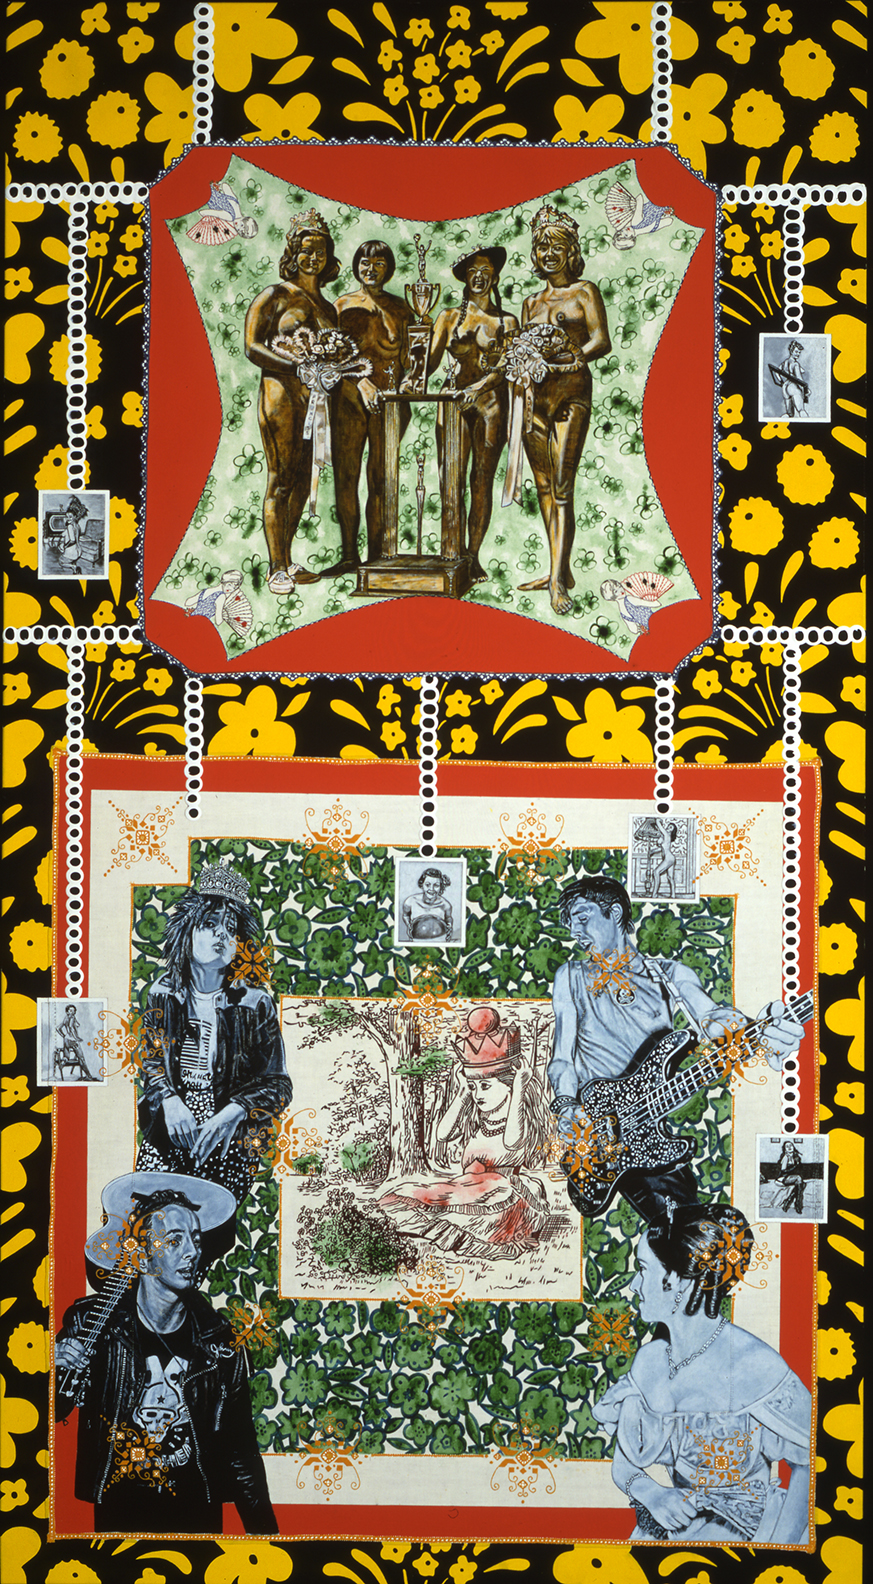 CAROLE CAROOMPAS, Hester and Zorro: In Quest of A New World: Queen of the Countryside, 1999 acrylic on found embroidery over canvas 96 x 50 inches